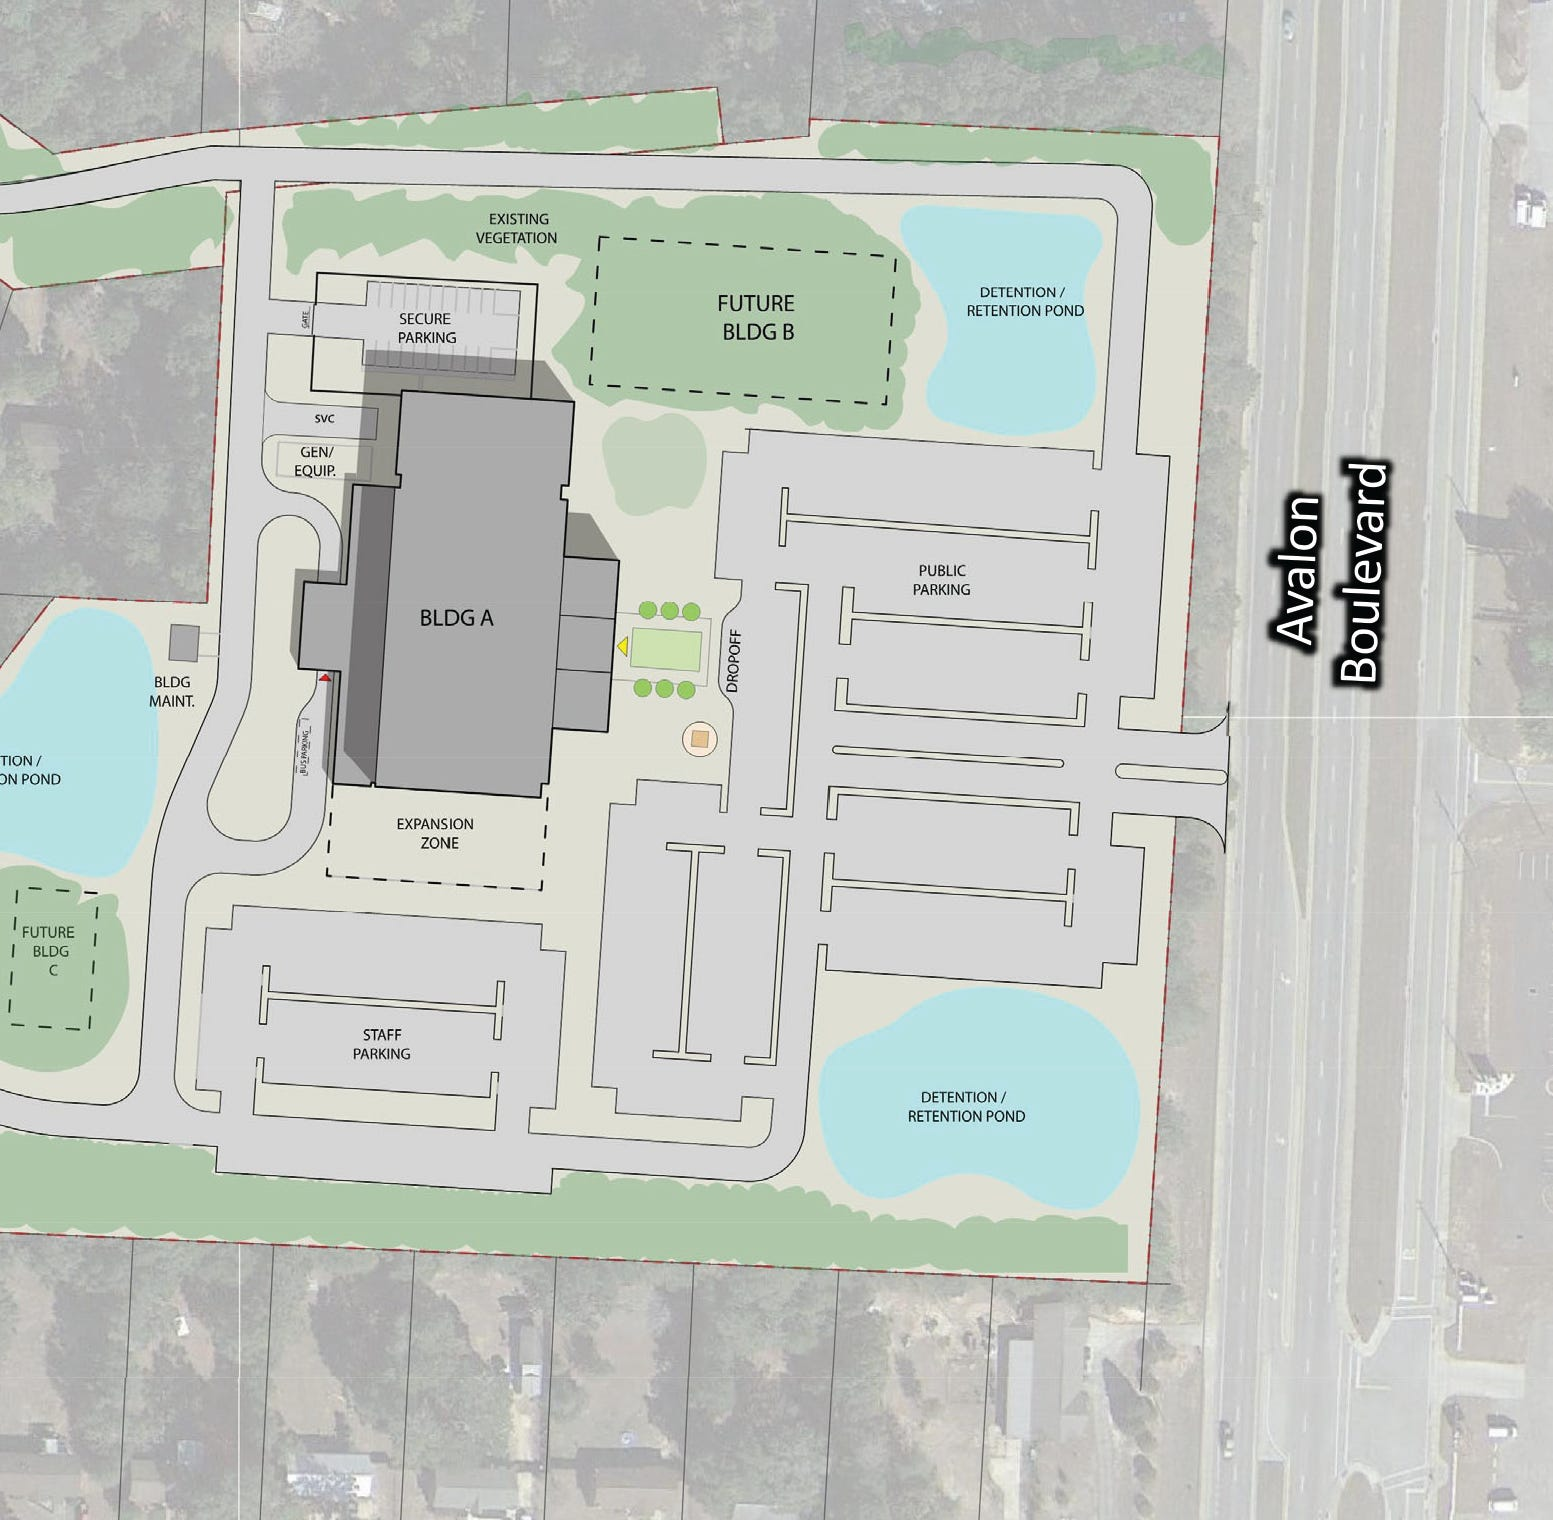 Here's what the new Santa Rosa County Courthouse grounds might look like